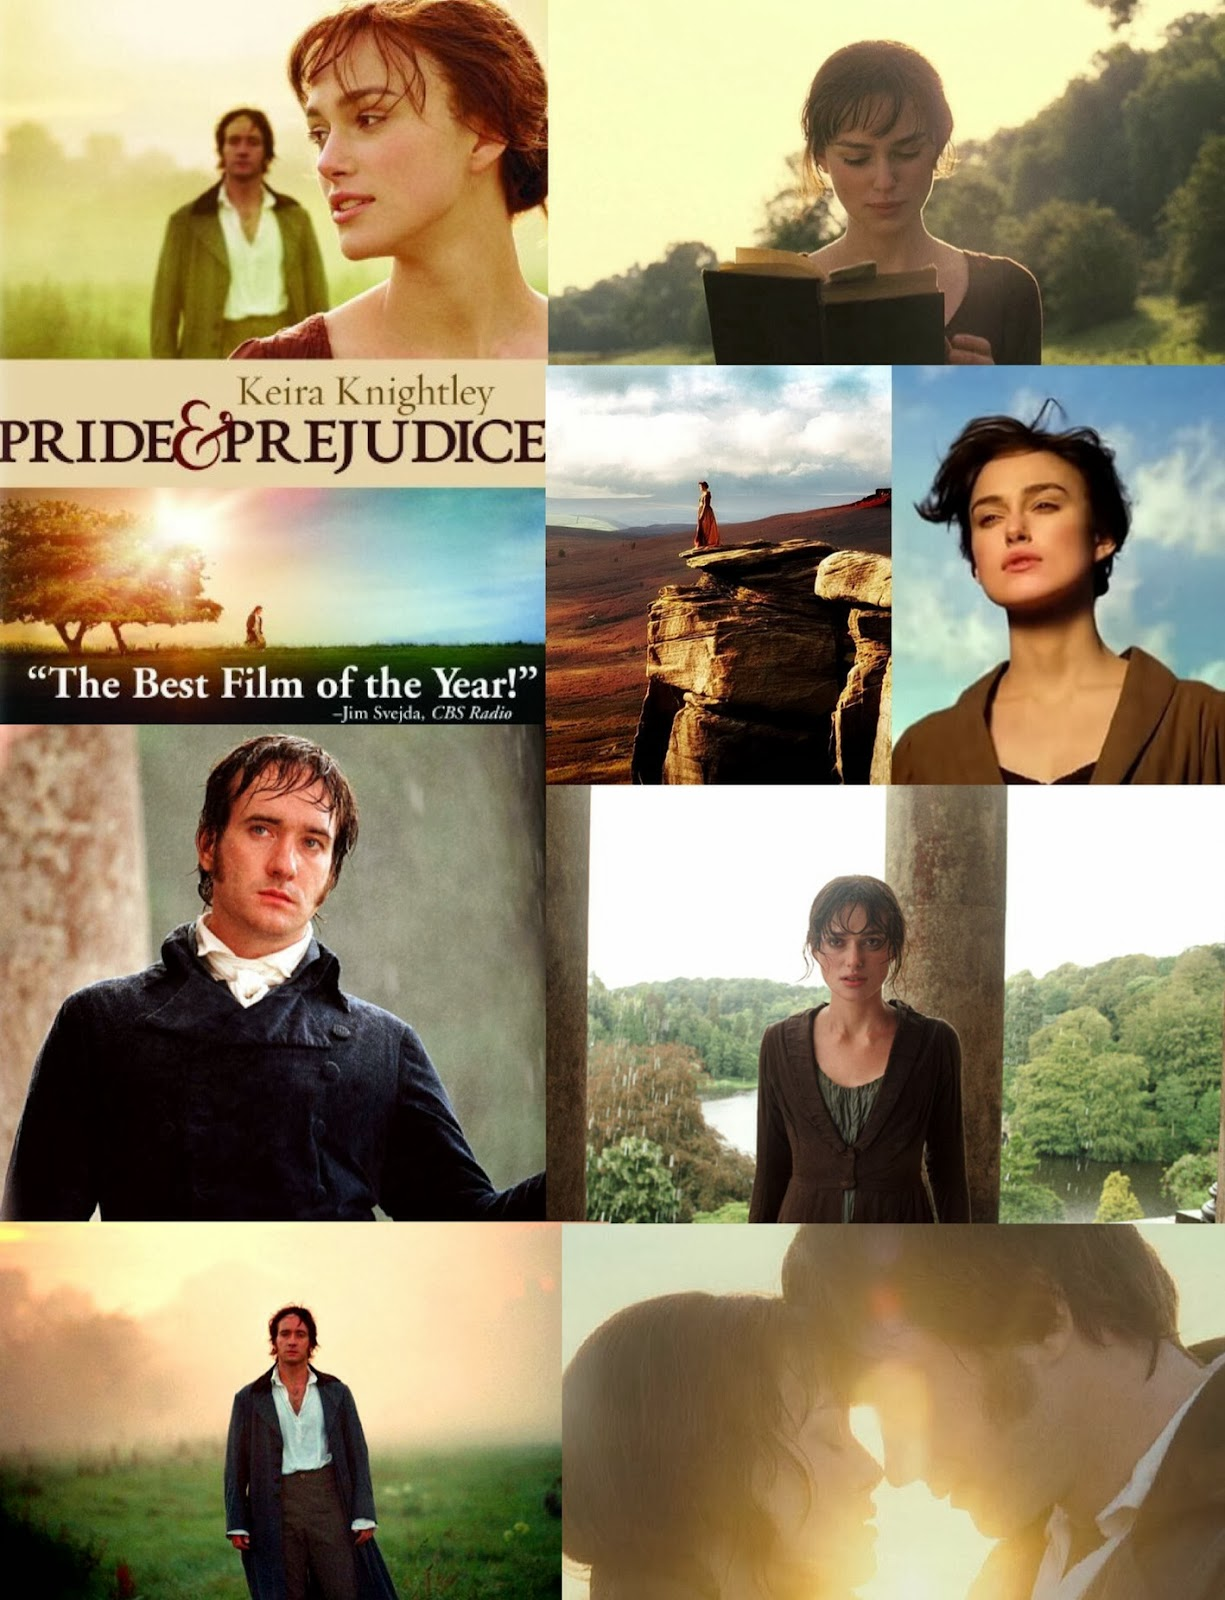 my prejudice The themes of pride and prejudice have already begun to take shape in mrs bennet's character by the end of the first chapter for example, she exhibits prideful behavior when she implies that her daughters are more deserving of mr bingley than other eligible daughters in the neighborhood.